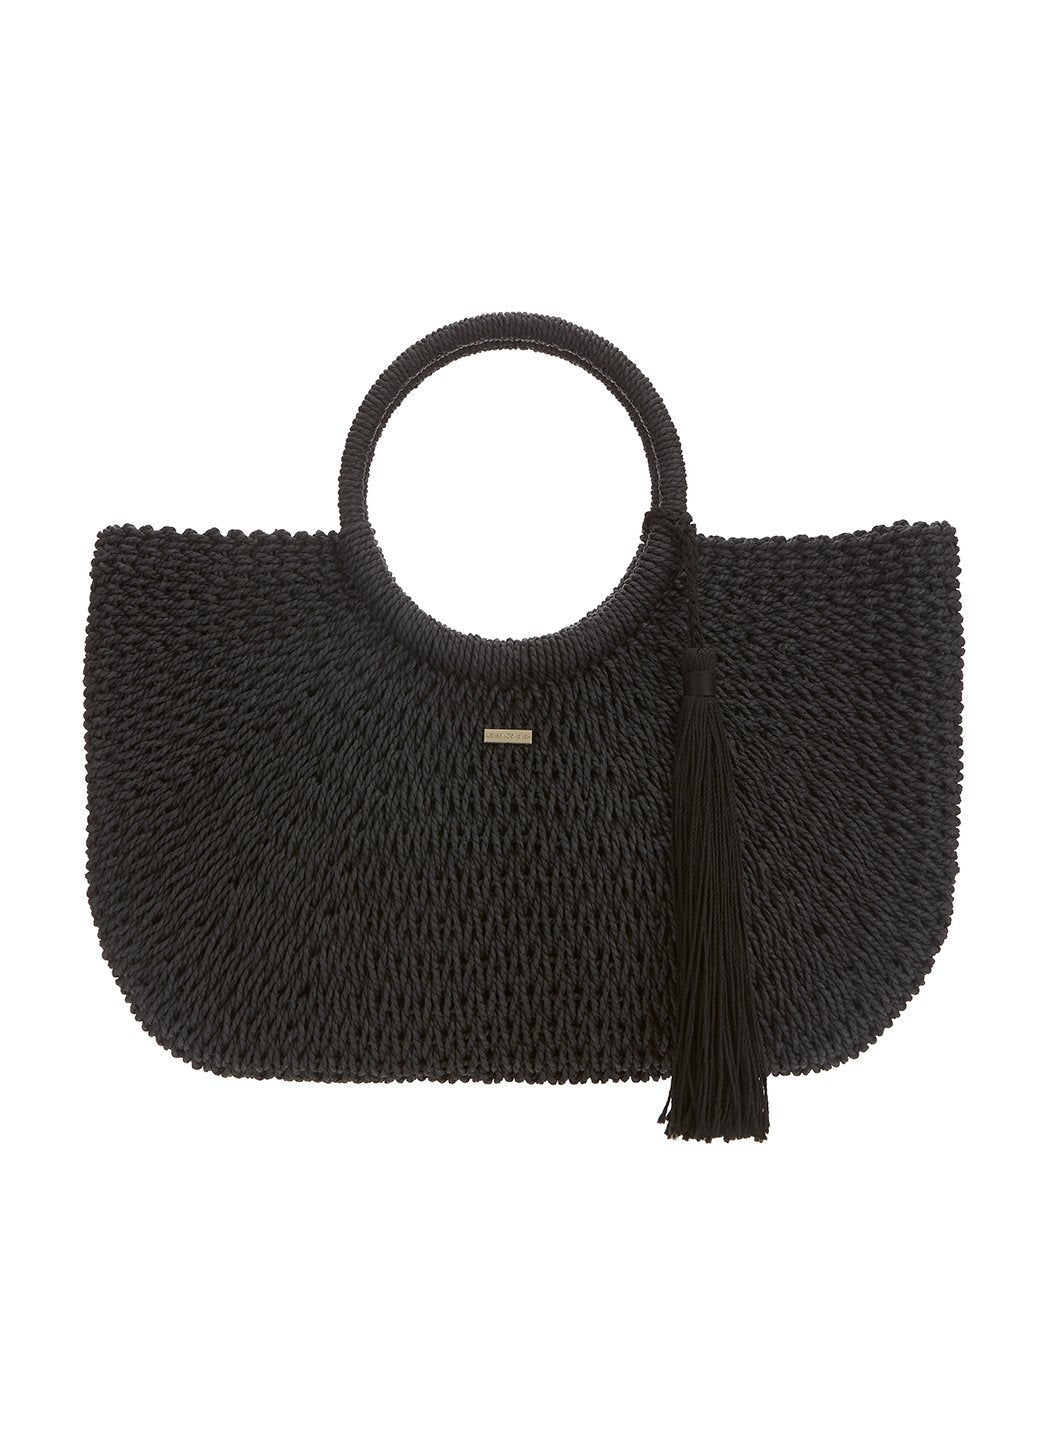 sorrento woven basket bag black 2019